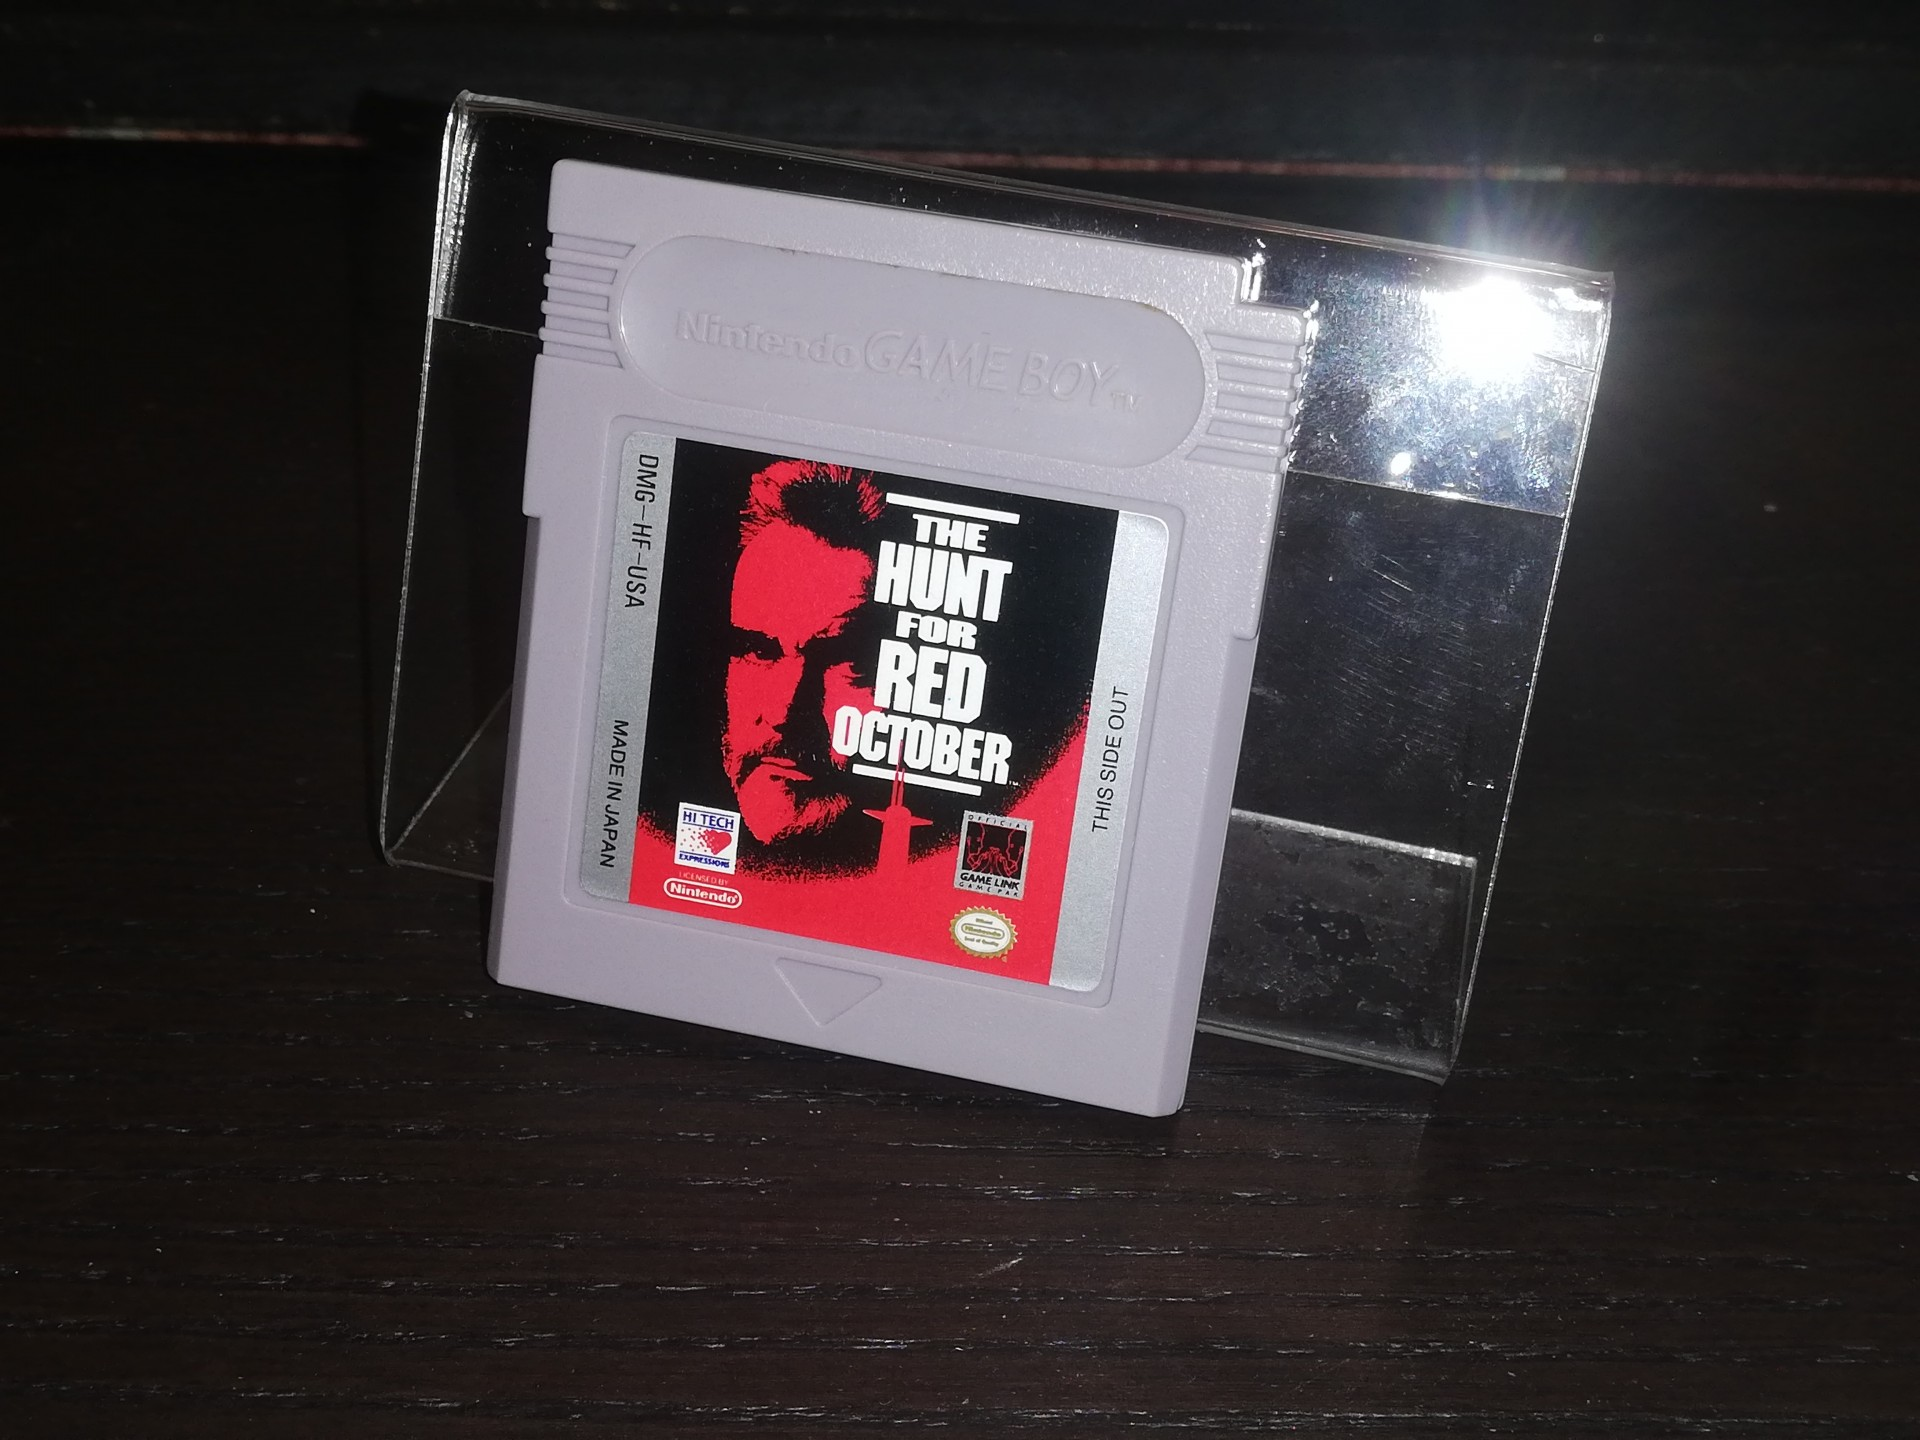 The Hunt for Red October [Cartucho] - NGB